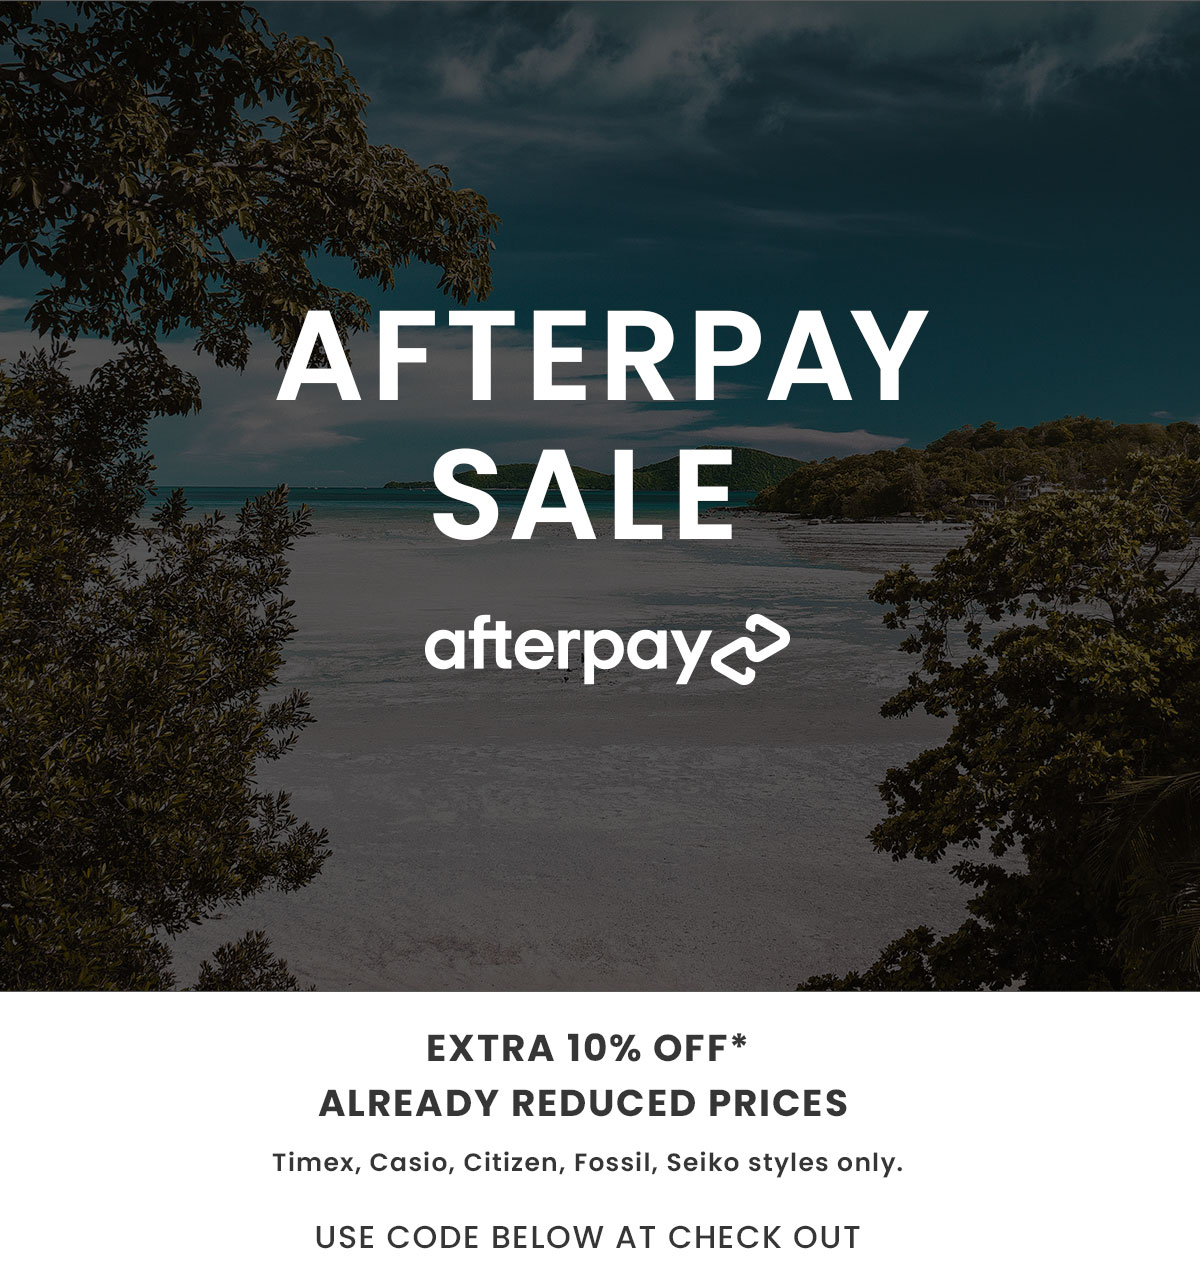 AfterPay Sale. Extra 10% Off Already Reduced Prices. Selected Styles Only. Shop Now.